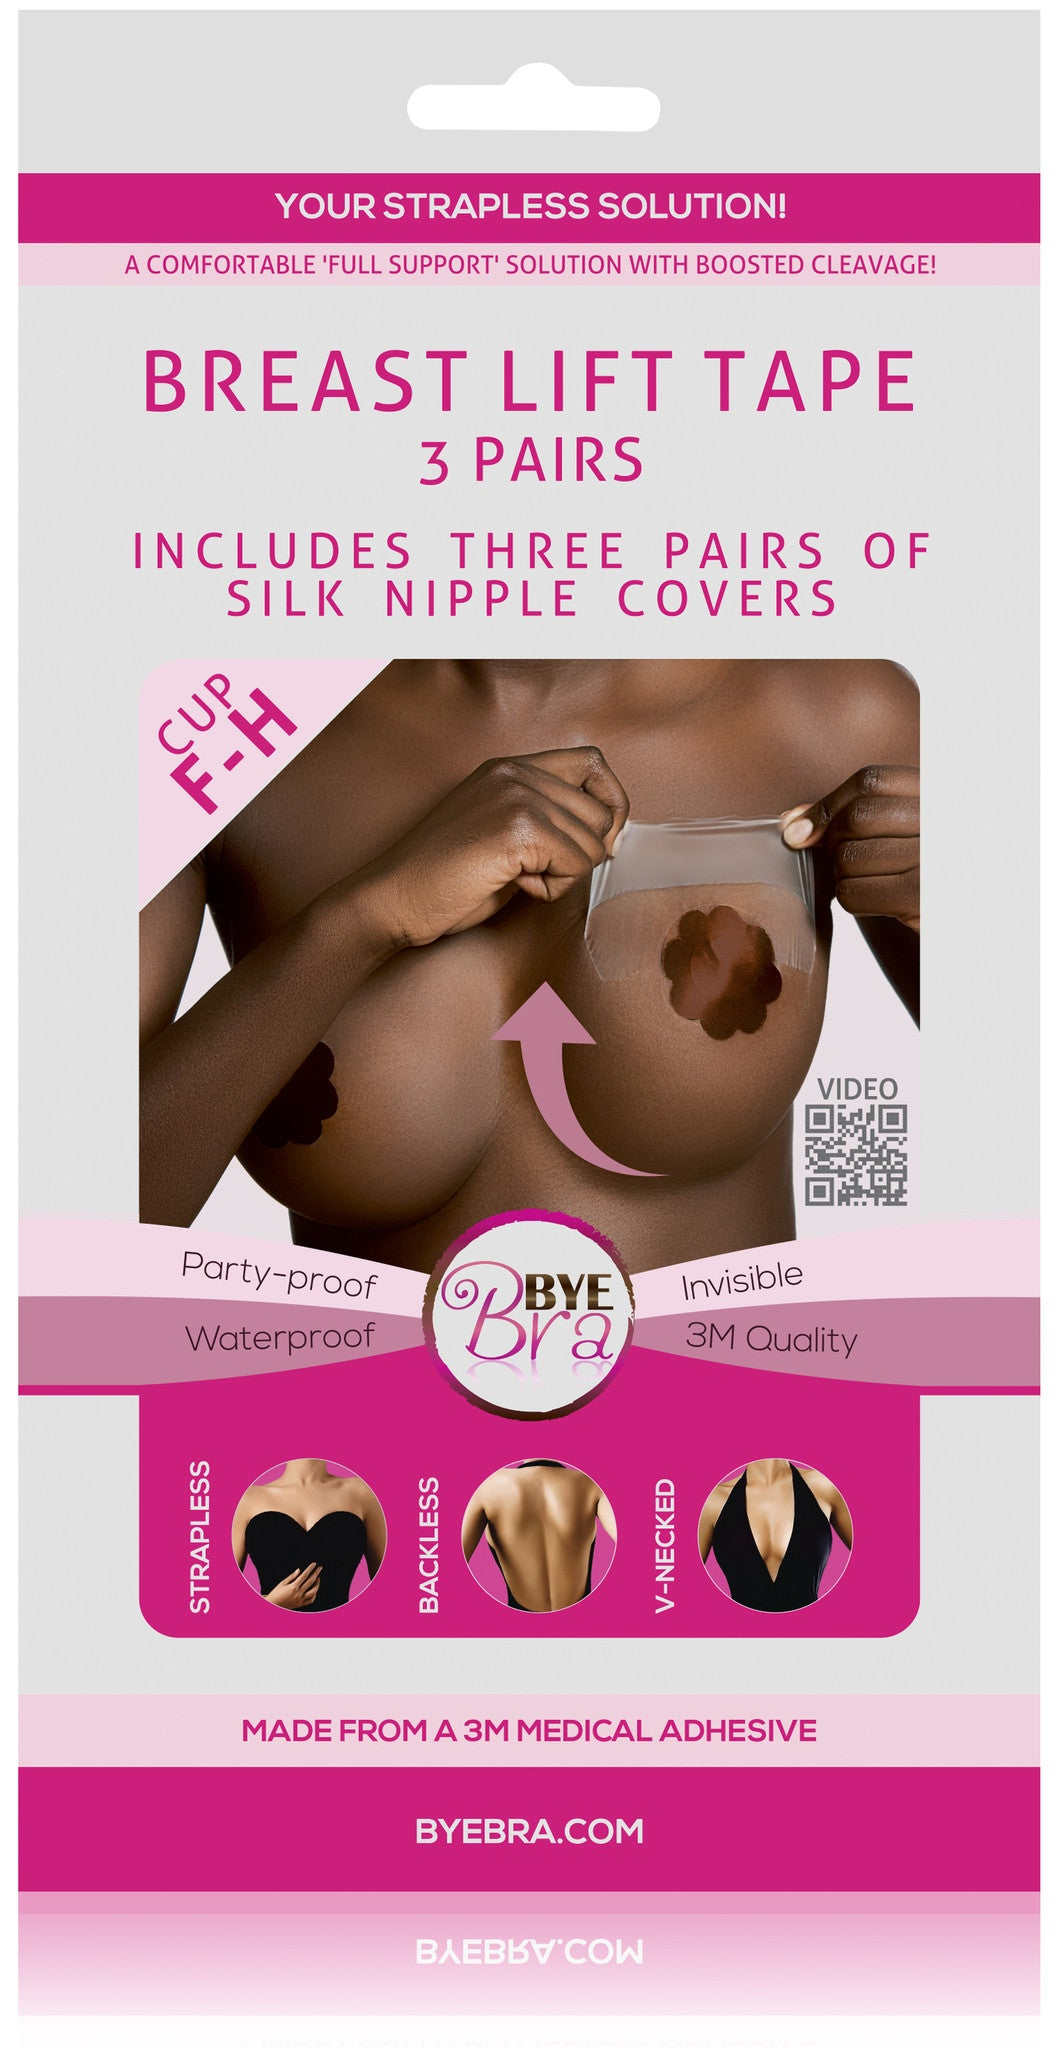 Bye Bra adhesive medical breast lift tape cup F-H with Dark silk nipple covers on Tights Etc south africa